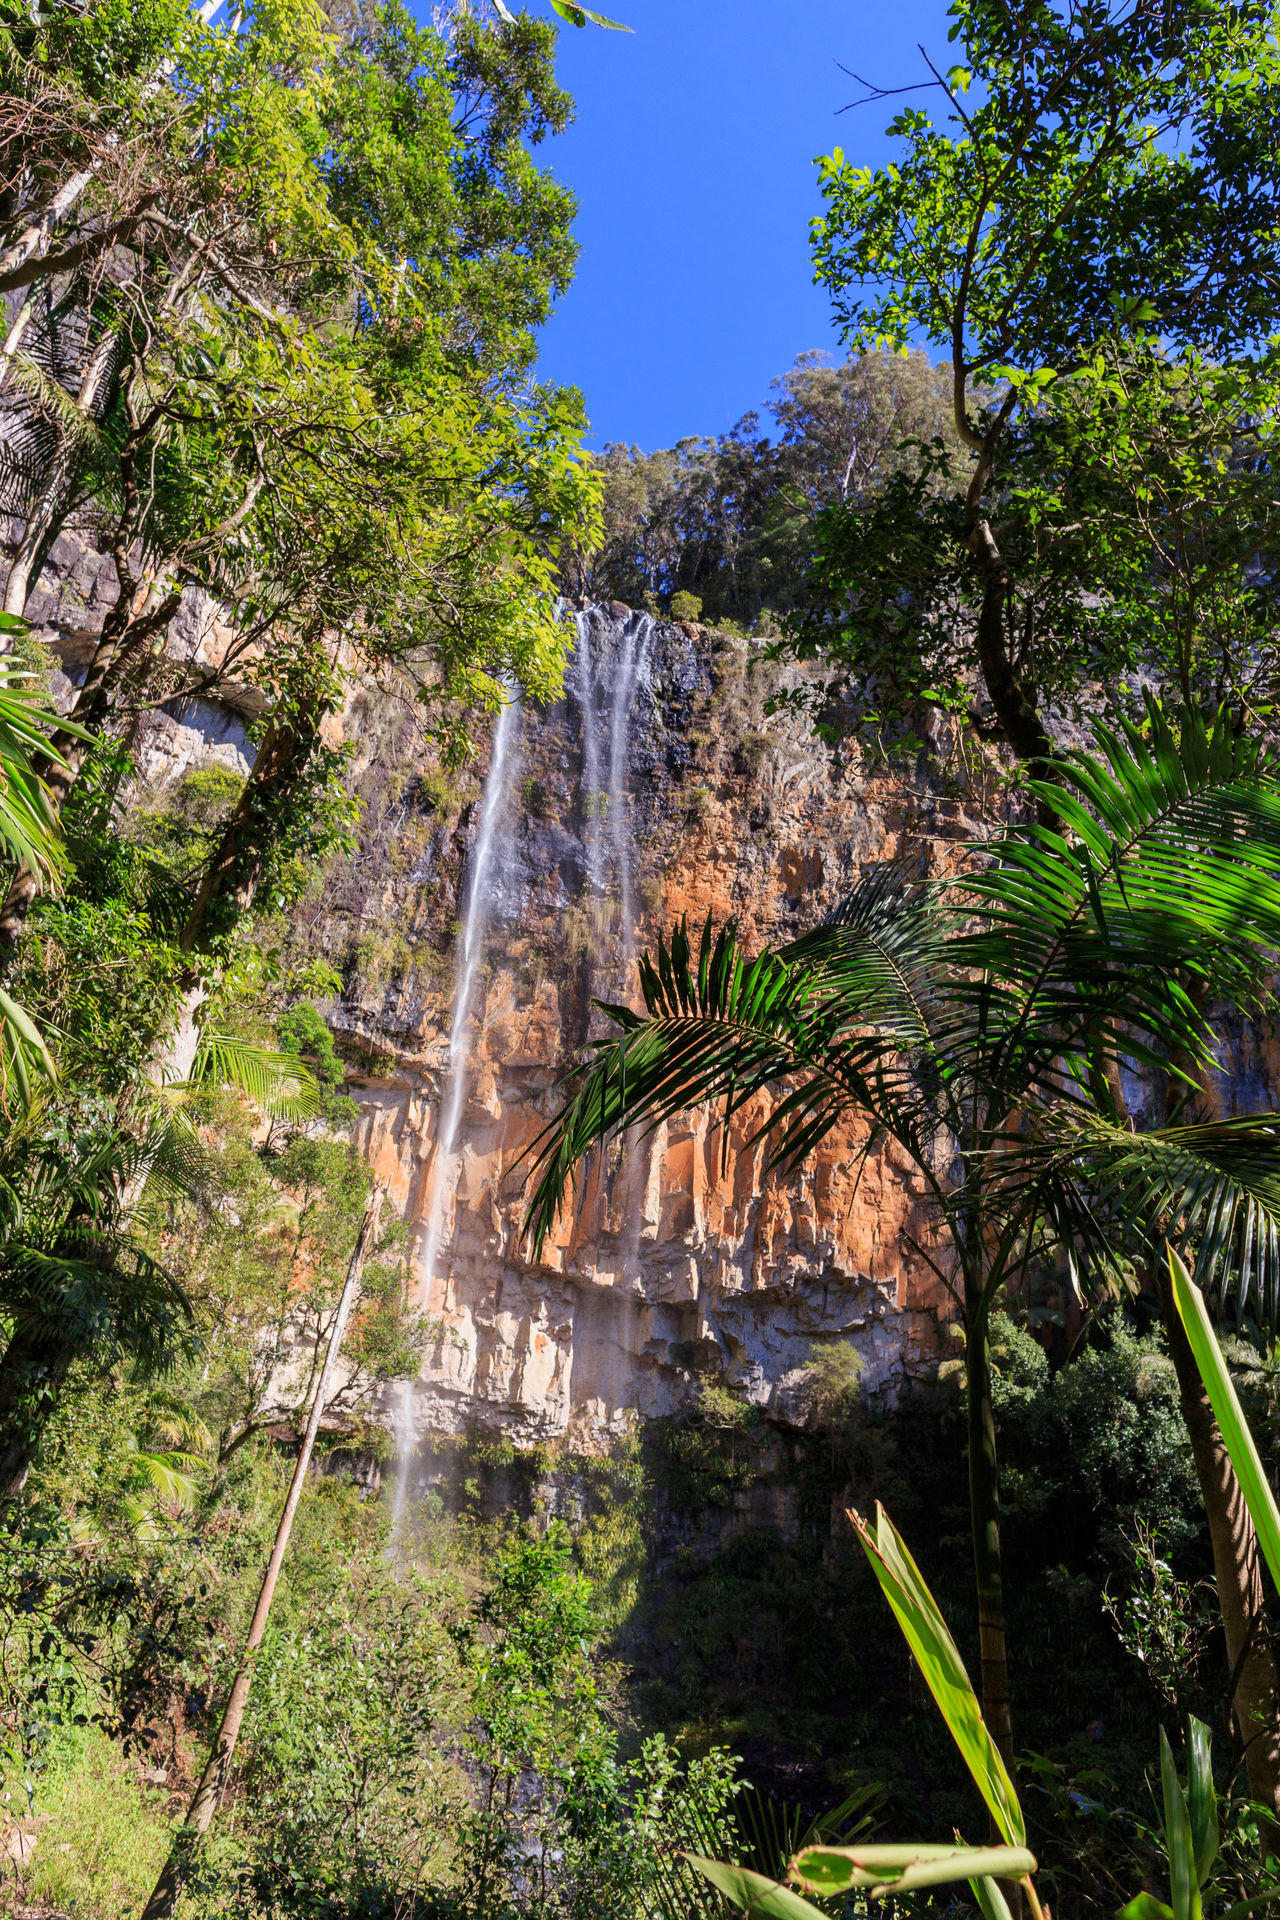 Beauty In Nature Day Forest GoldCoast Growth Nature No People Outdoors Plant Purling Brook Falls Queensland Scenics Sky Tranquil Scene Tranquility Tree